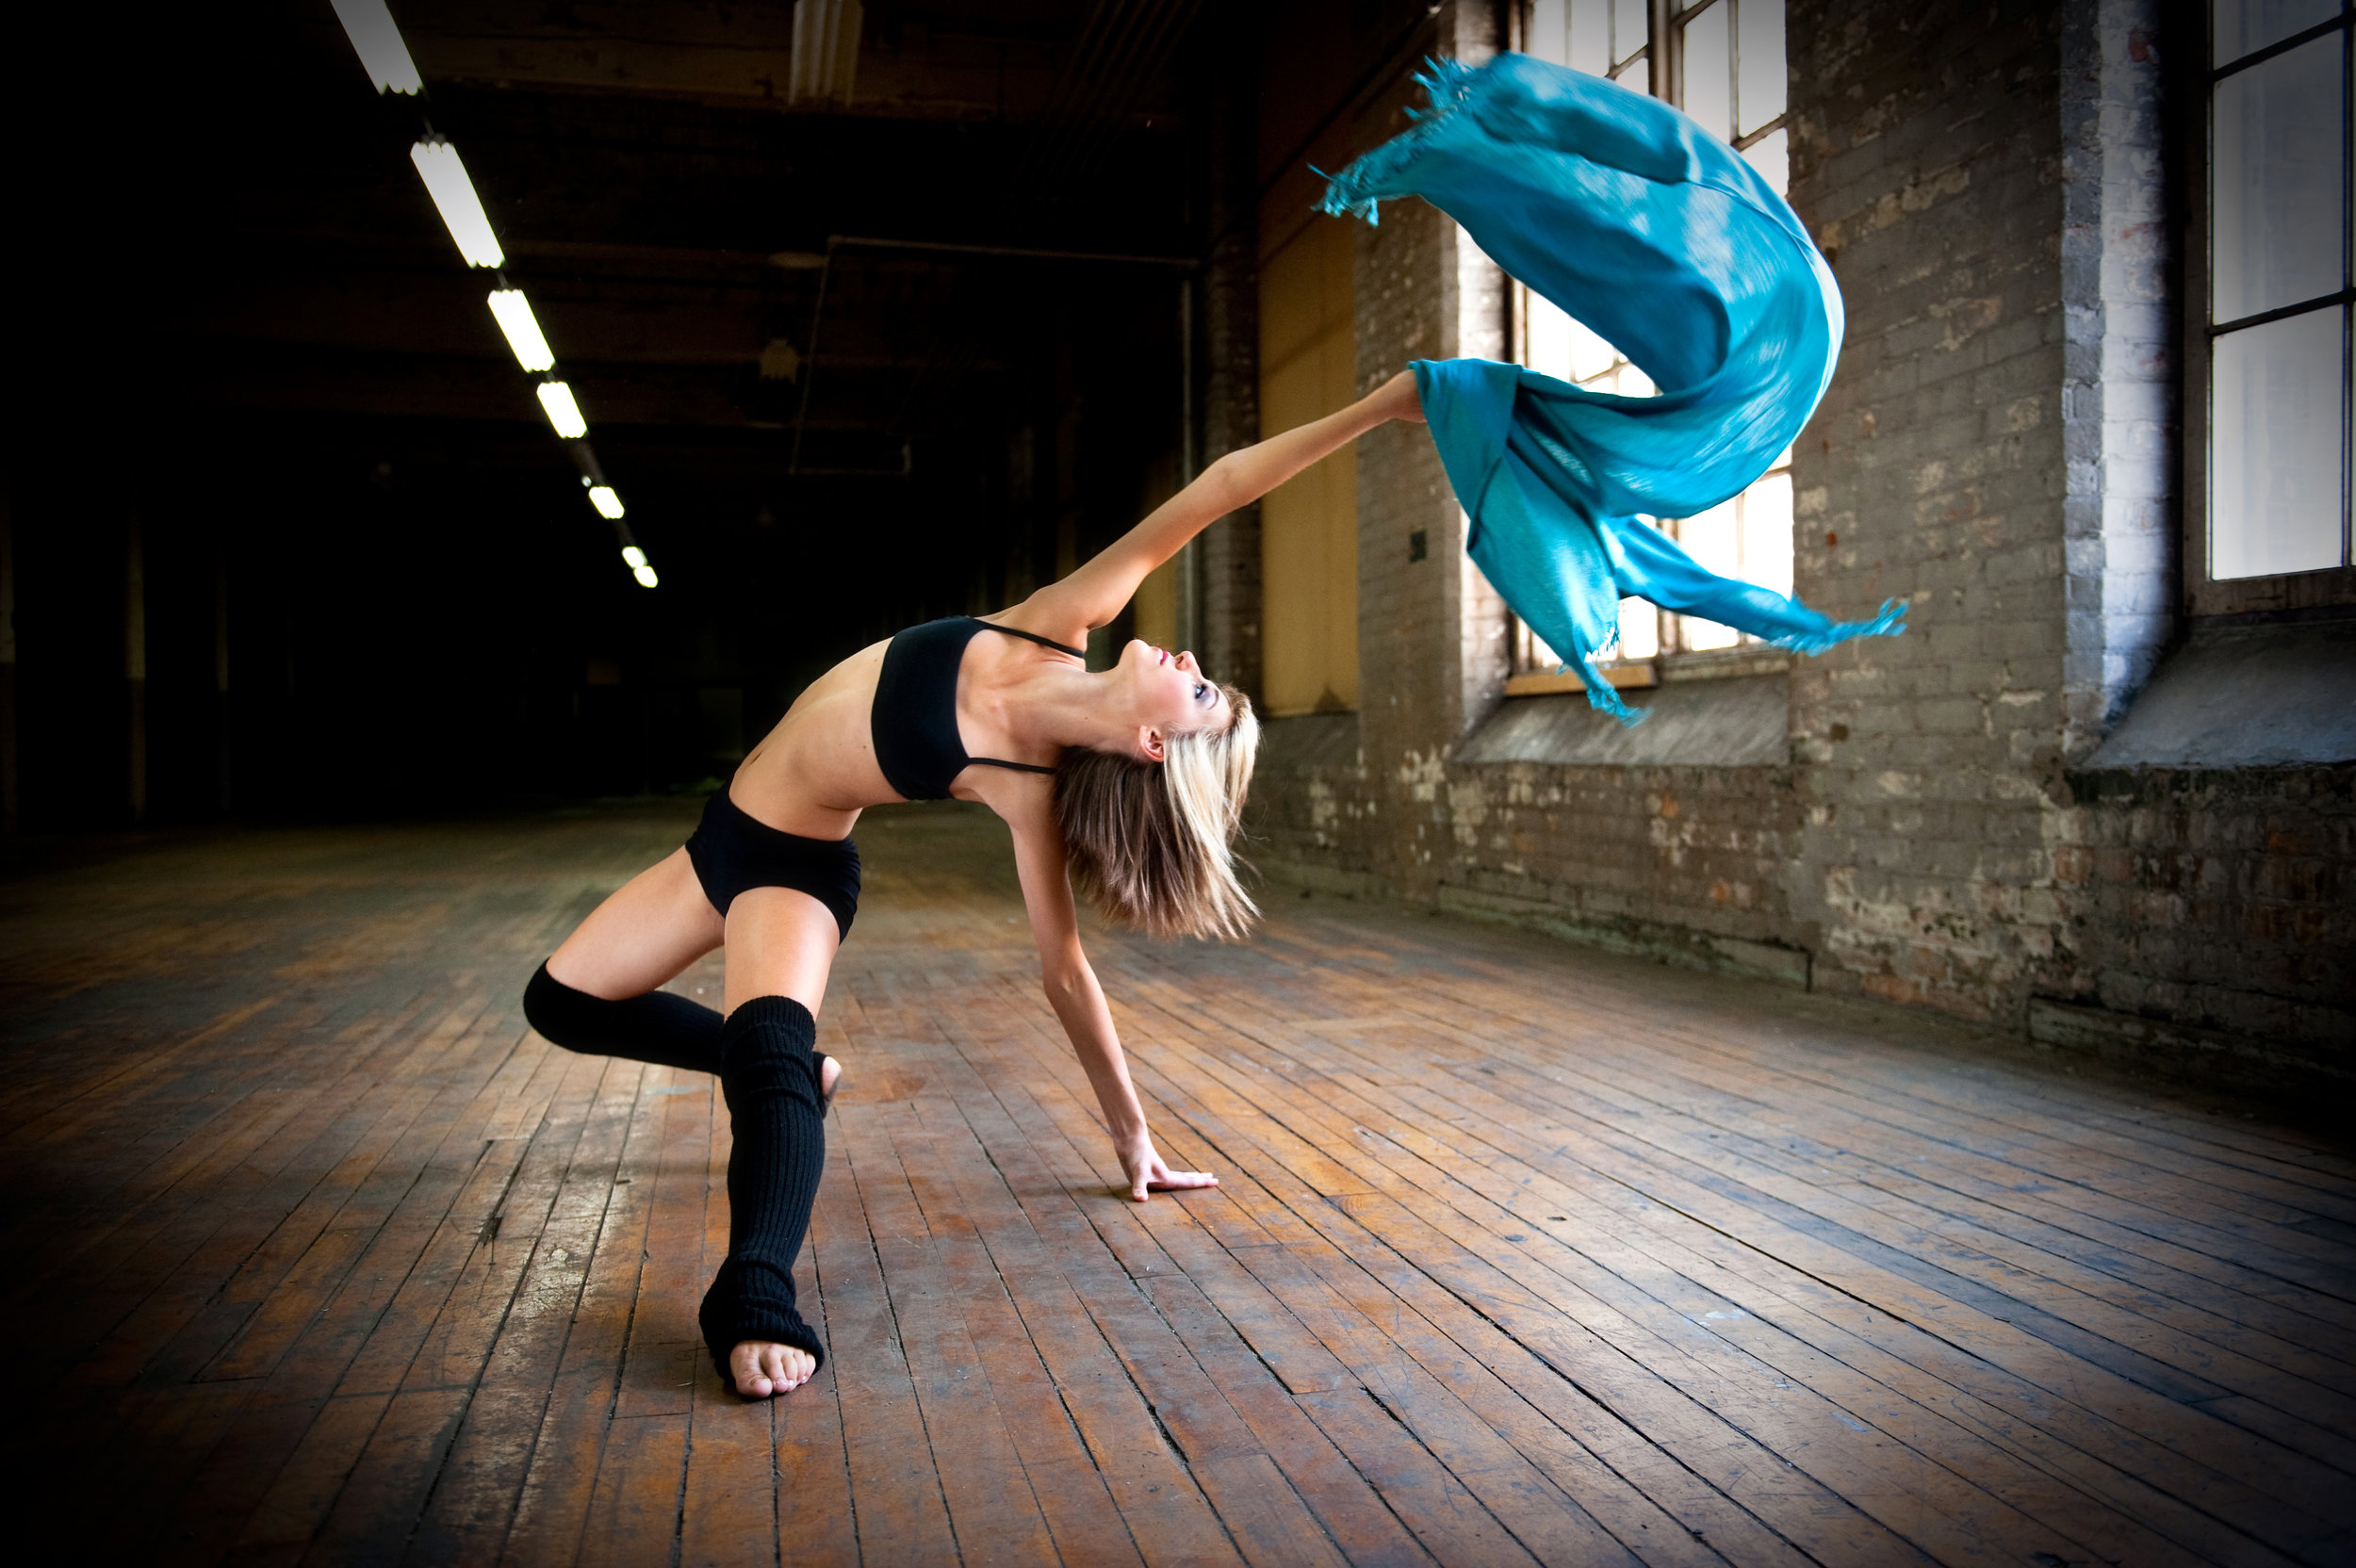 Marta-Hewson-Themed-portrait-dancer-with-flowing-material.jpg